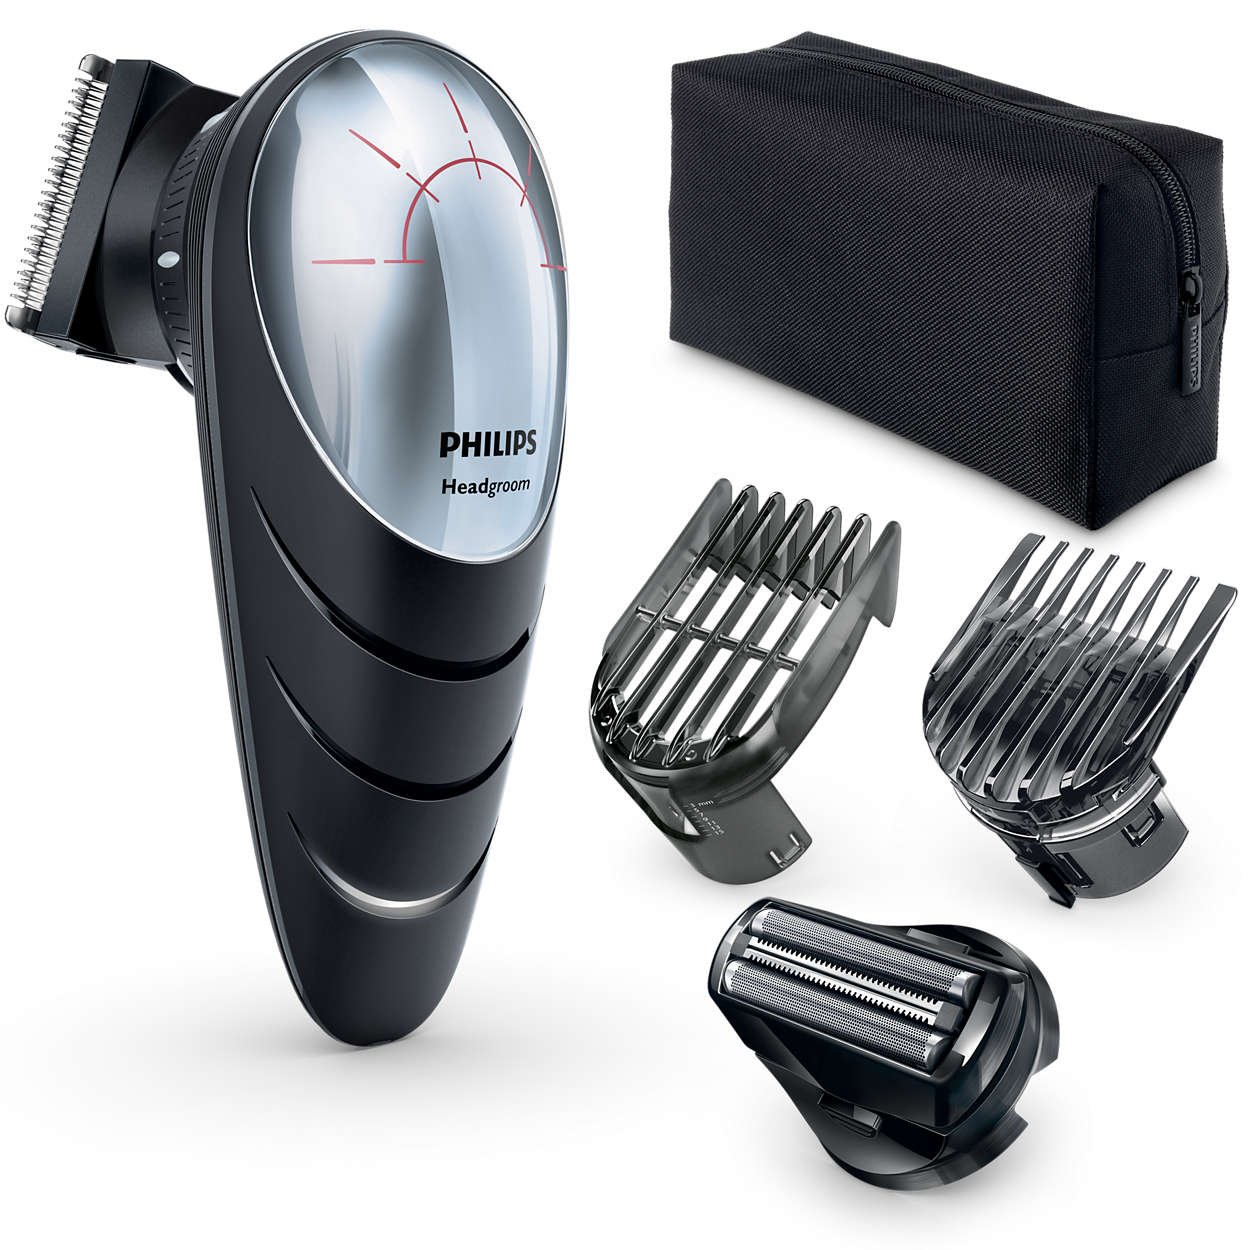 Philips QC5580 Do-it-Yourself Hair Clippers with Head Shaver Attachment by PHILIPS